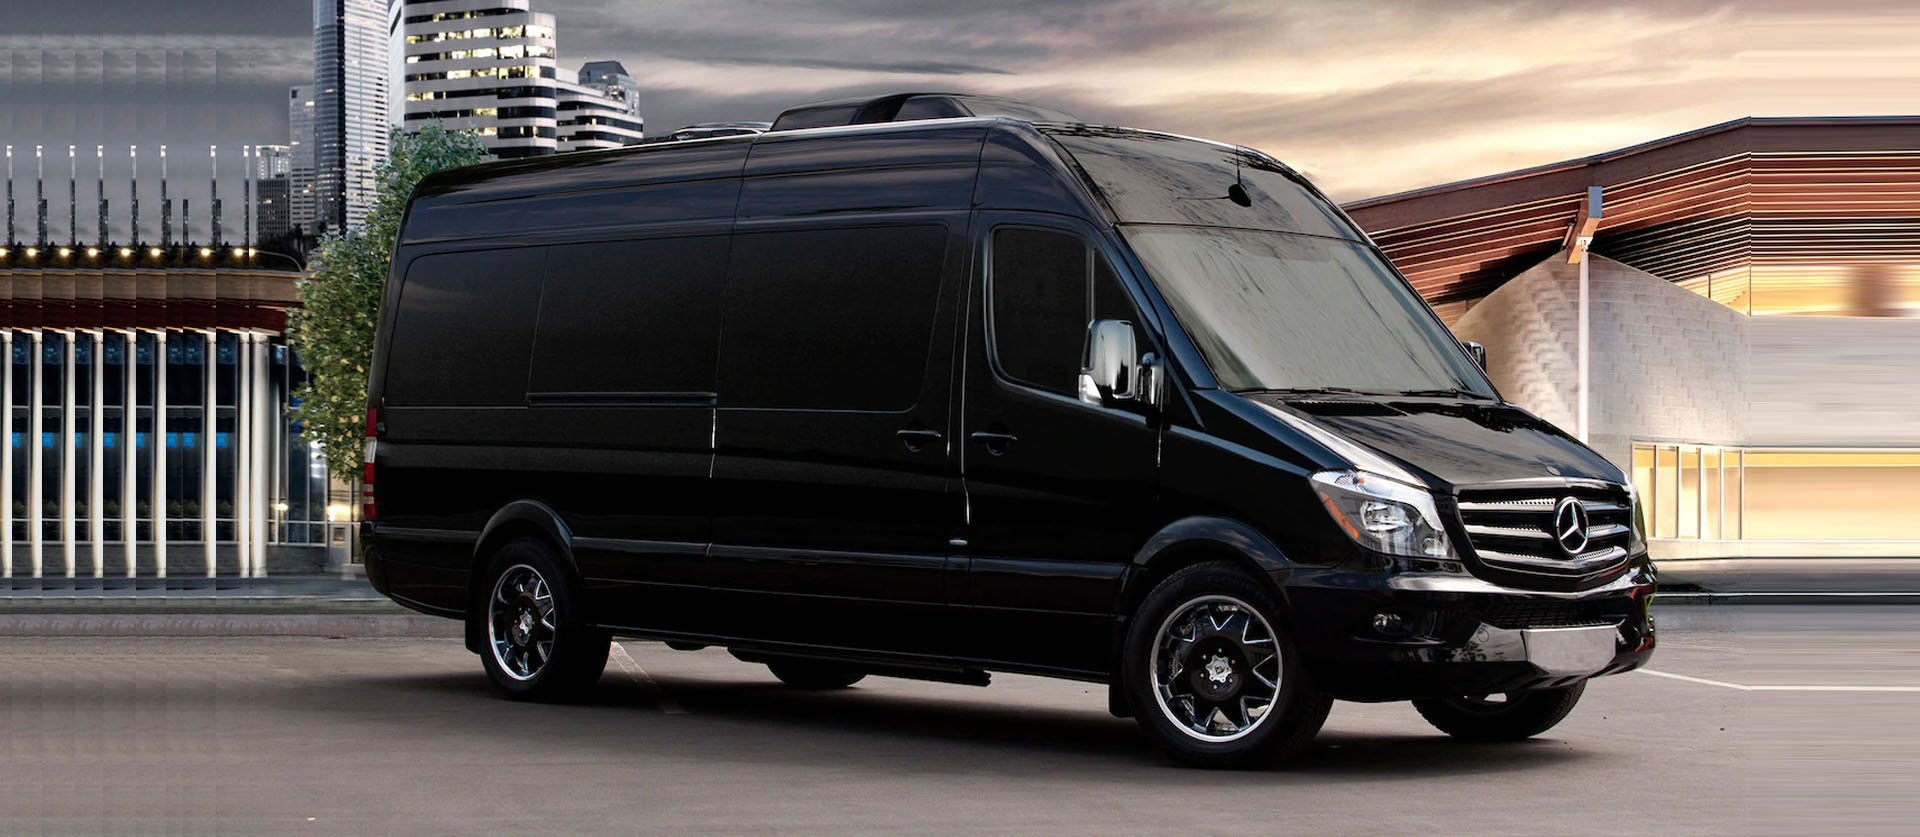 15 Passenger Luxury Van Rental Minneapolis, MN